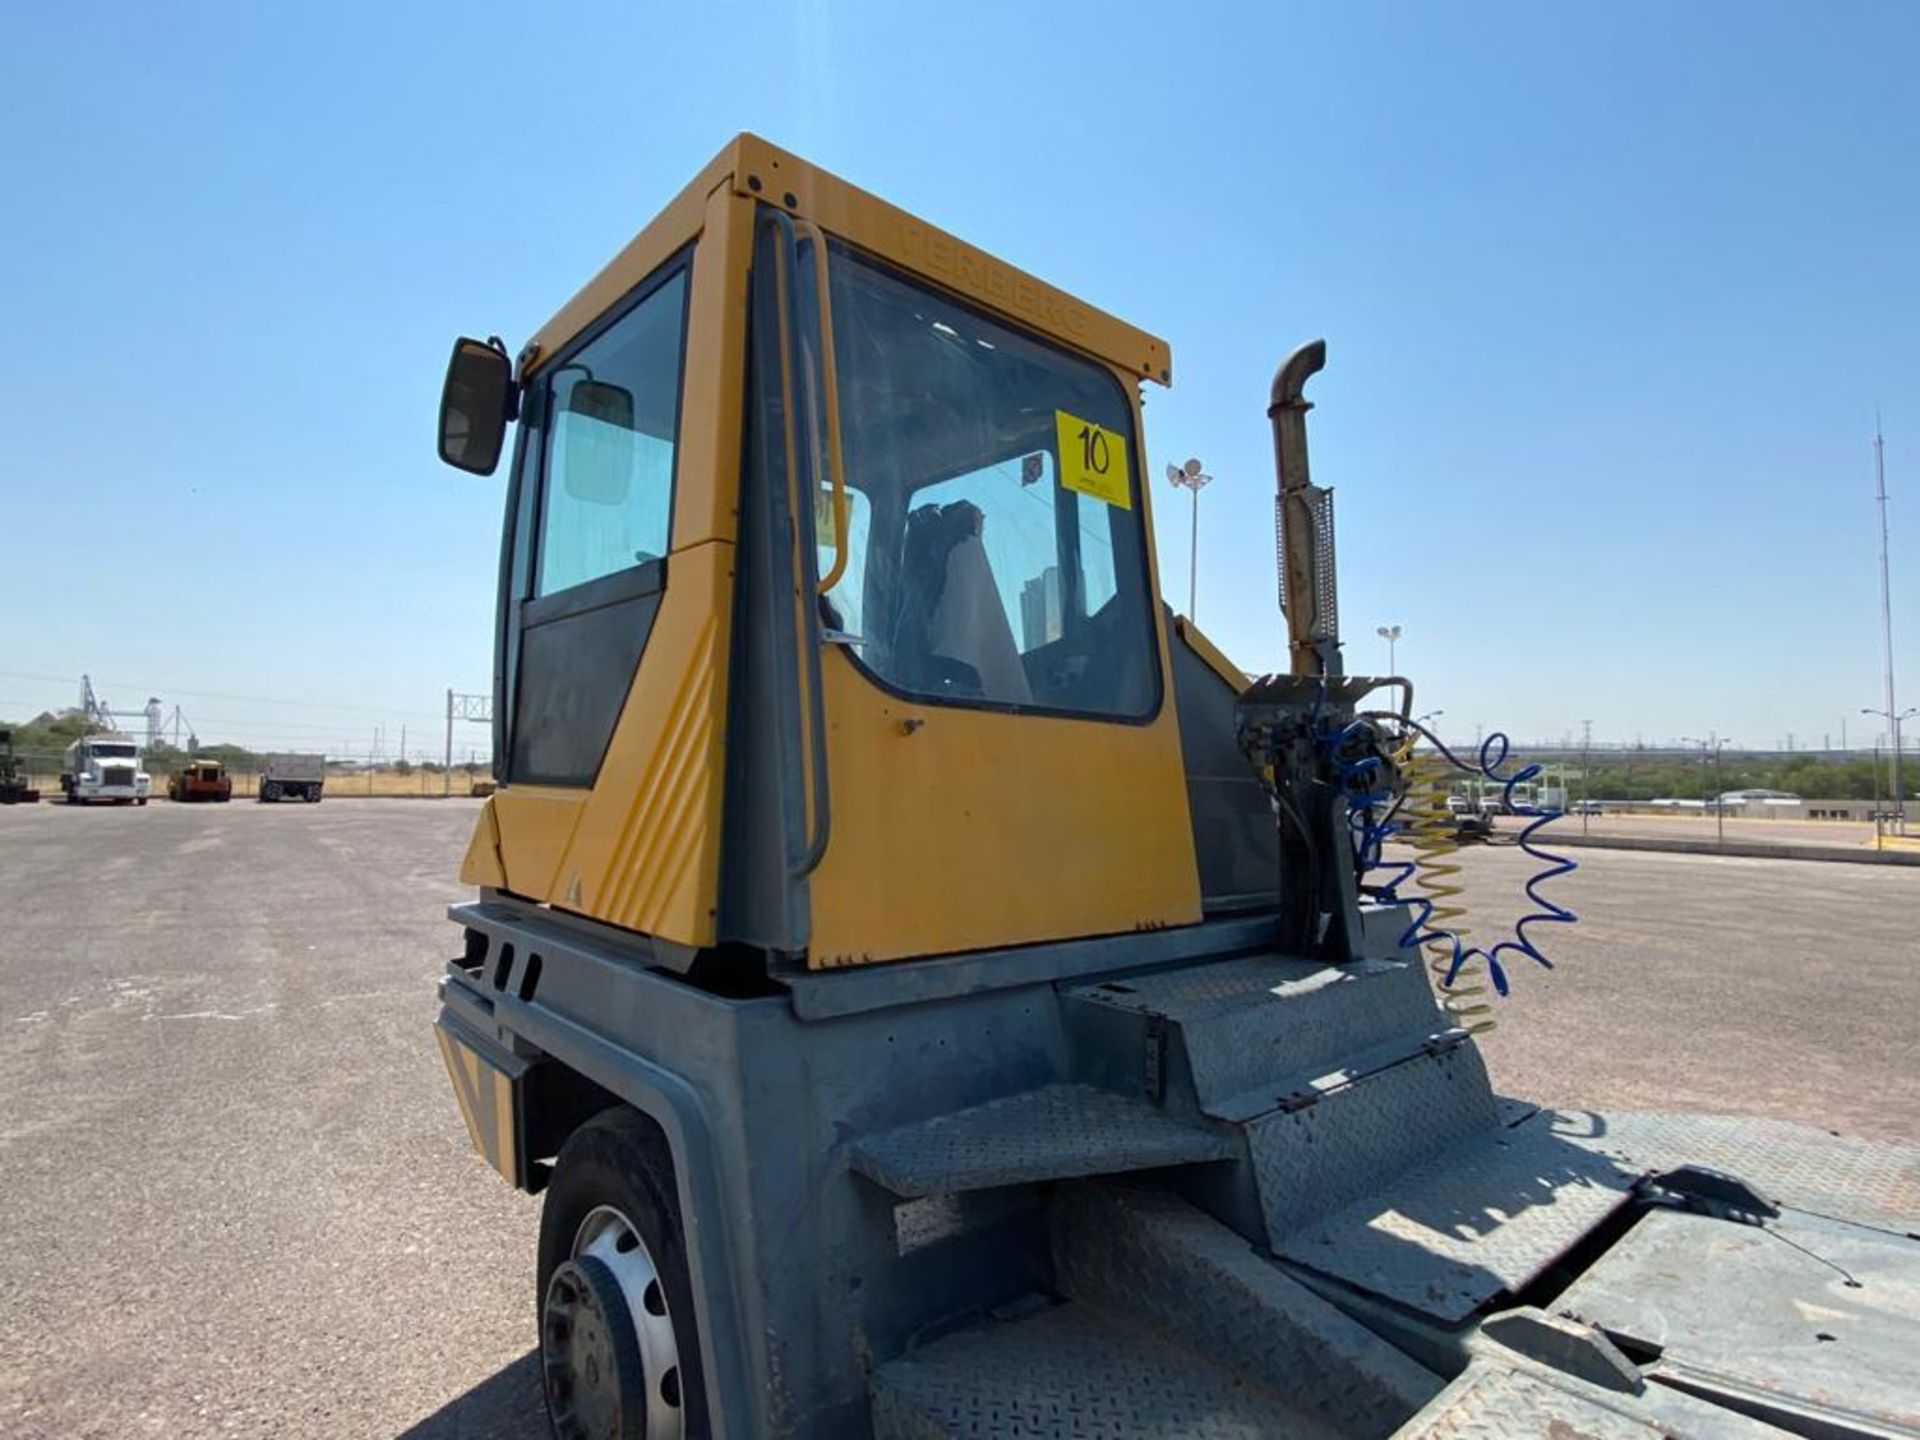 Terberg Capacity 2002 Terminal Tractor, automatic transmission, with Volvo motor - Image 13 of 28